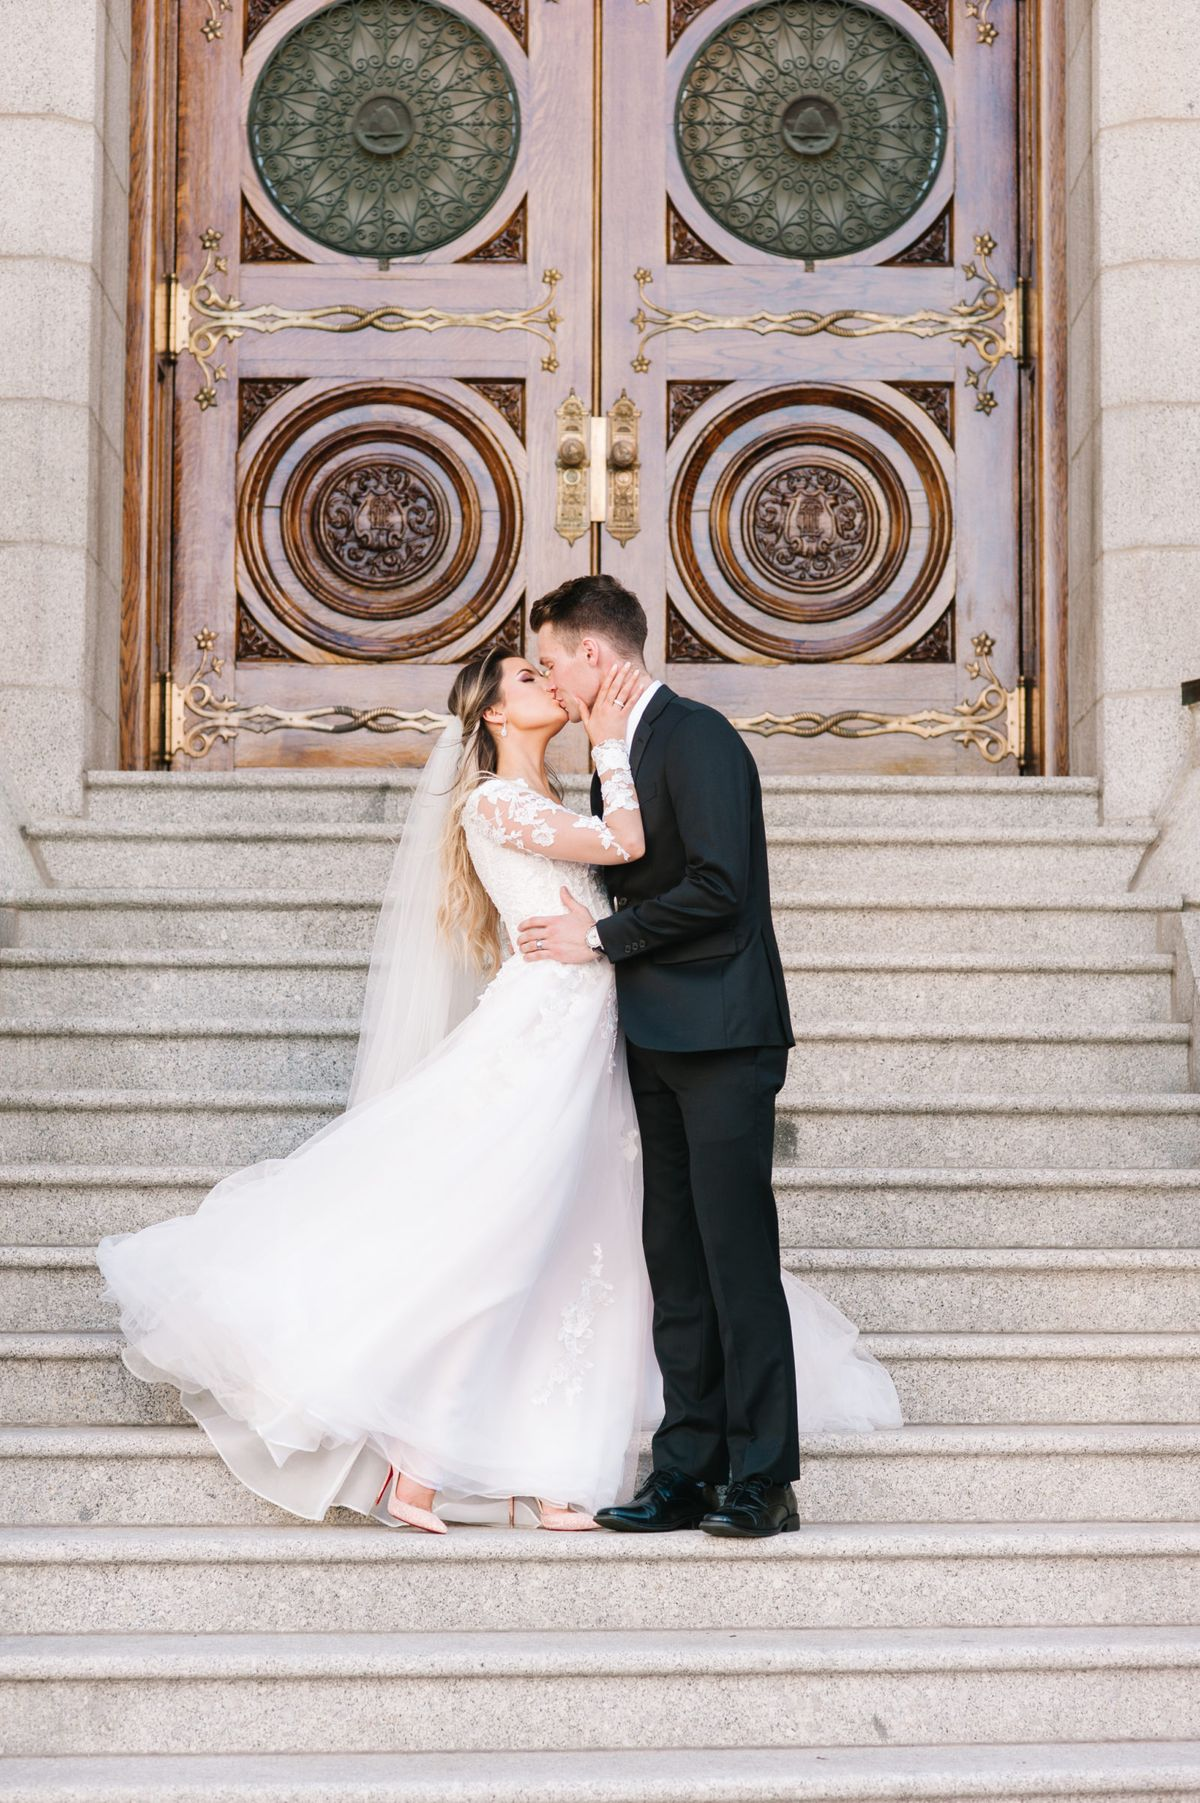 How To Choose a Wedding Dress That Complements Your Venue ⋆ Ruffled